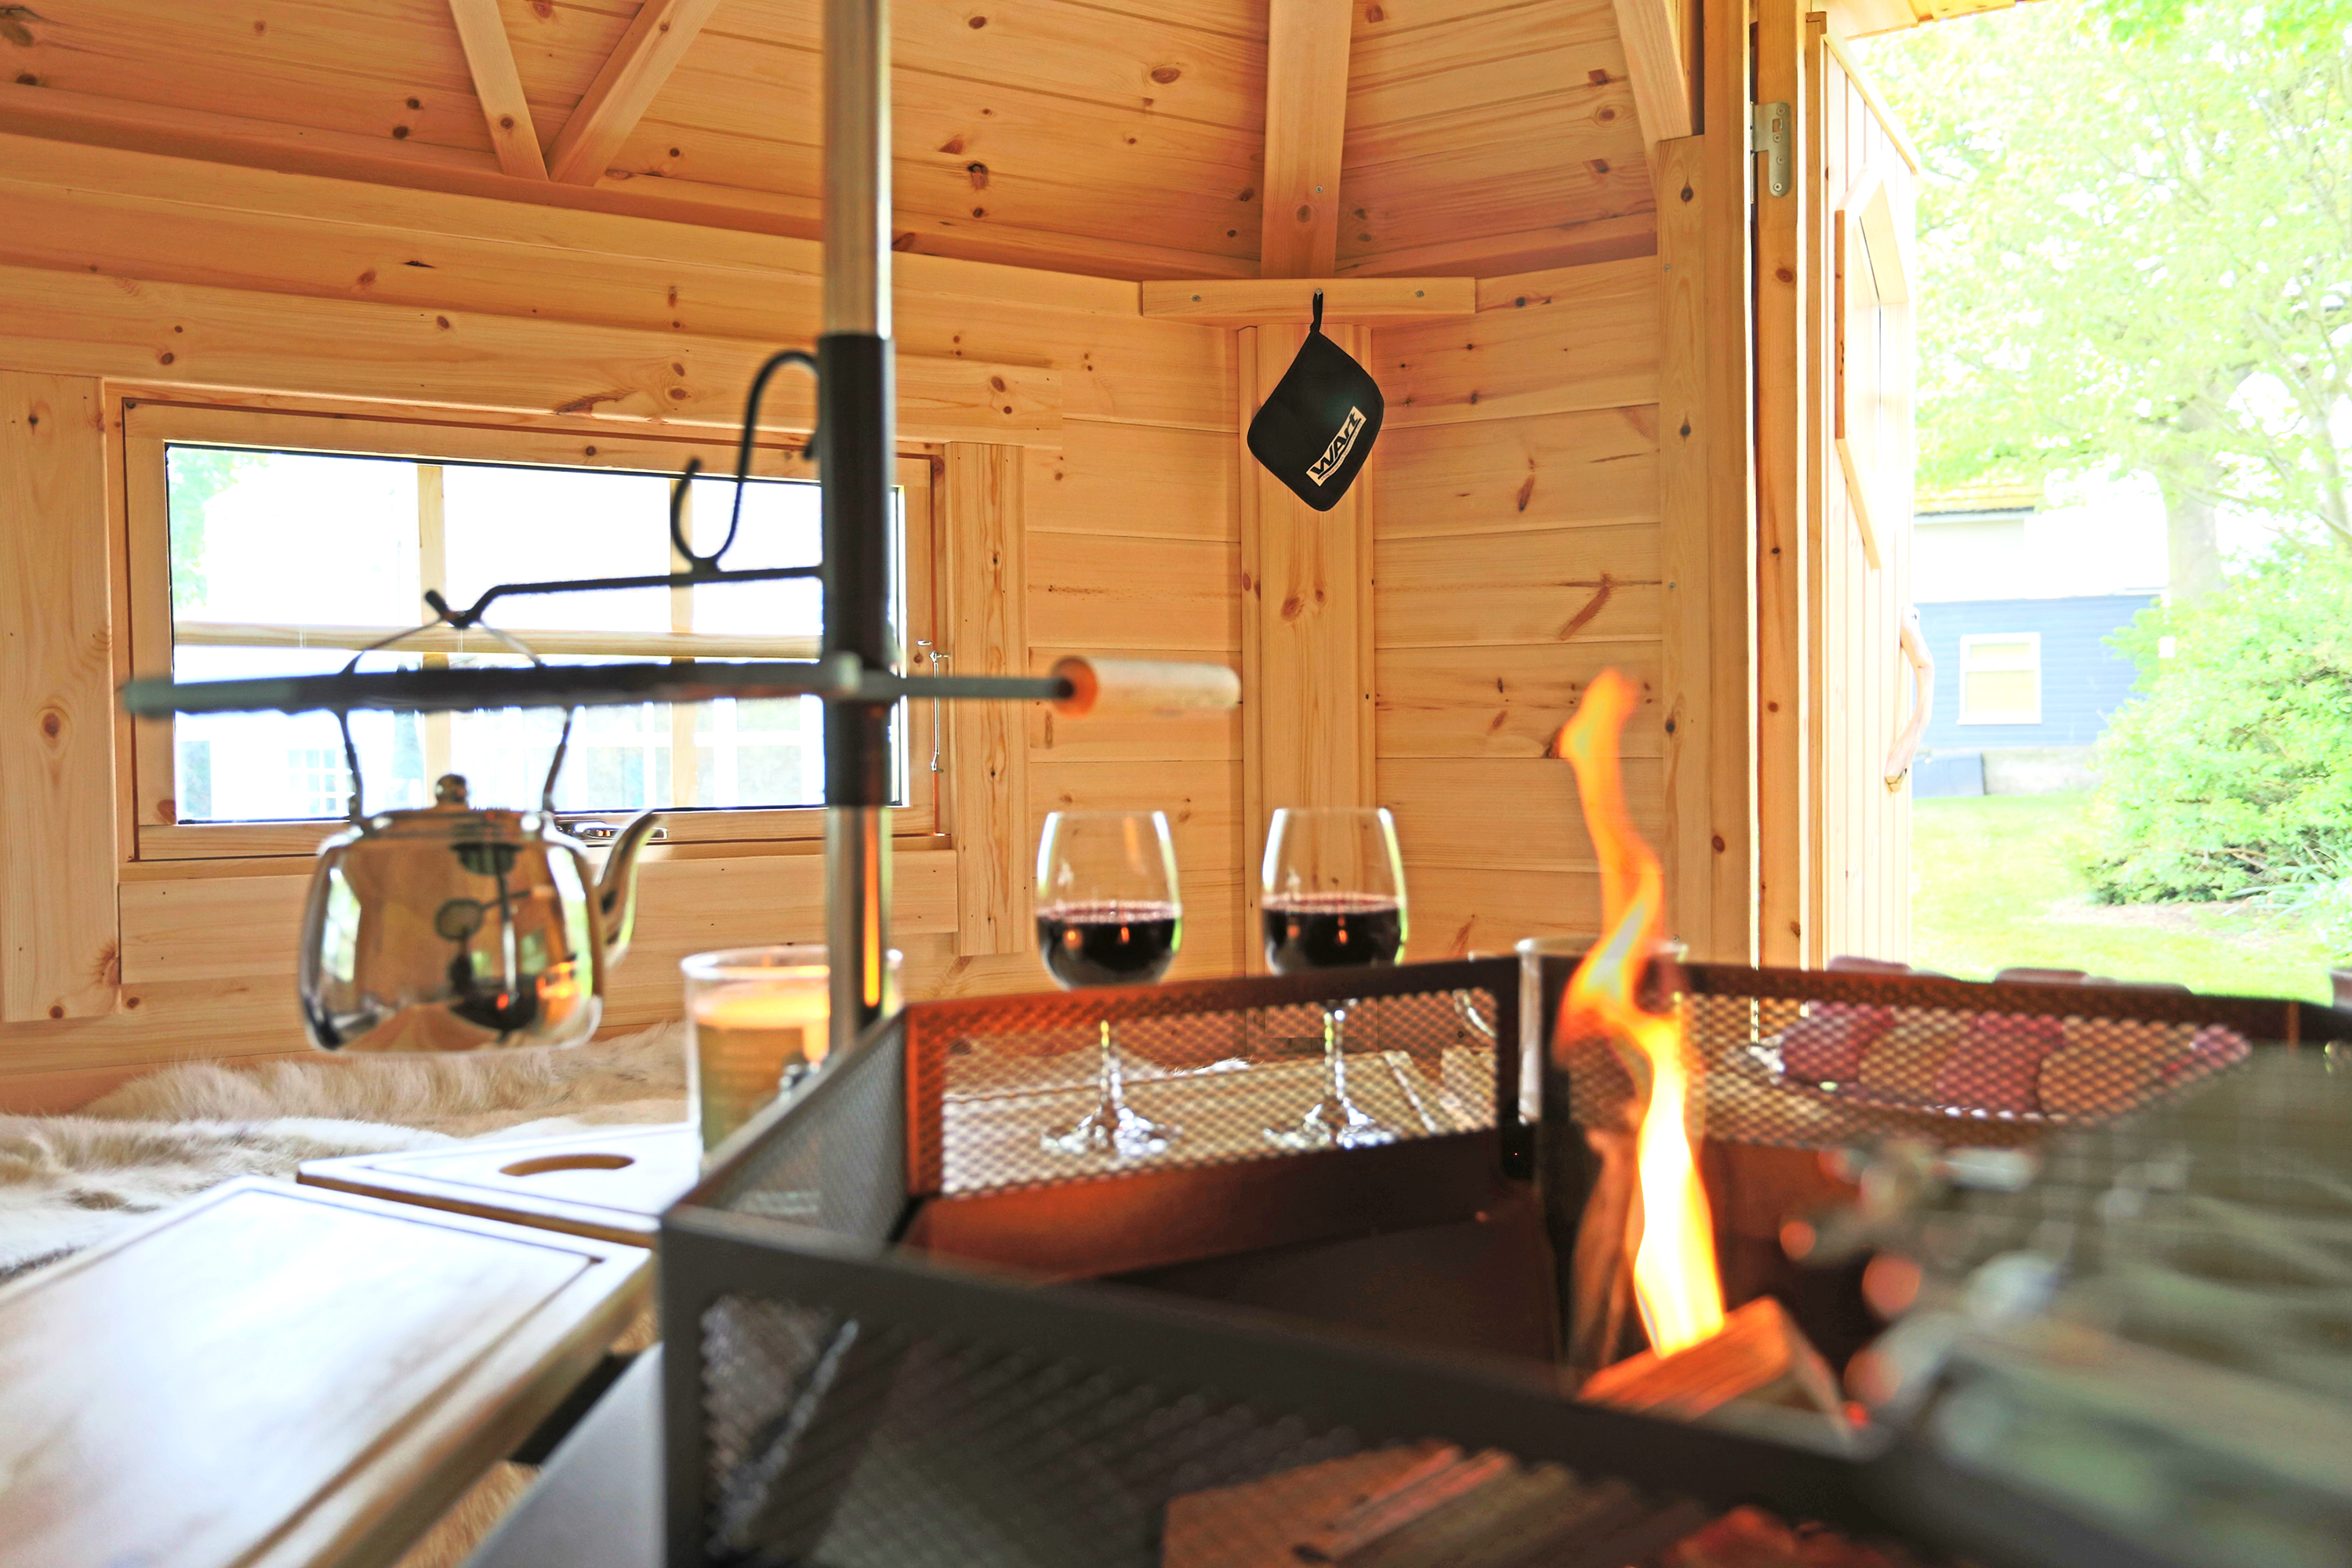 BBQ Huts Kotas in cottages in Northumberland